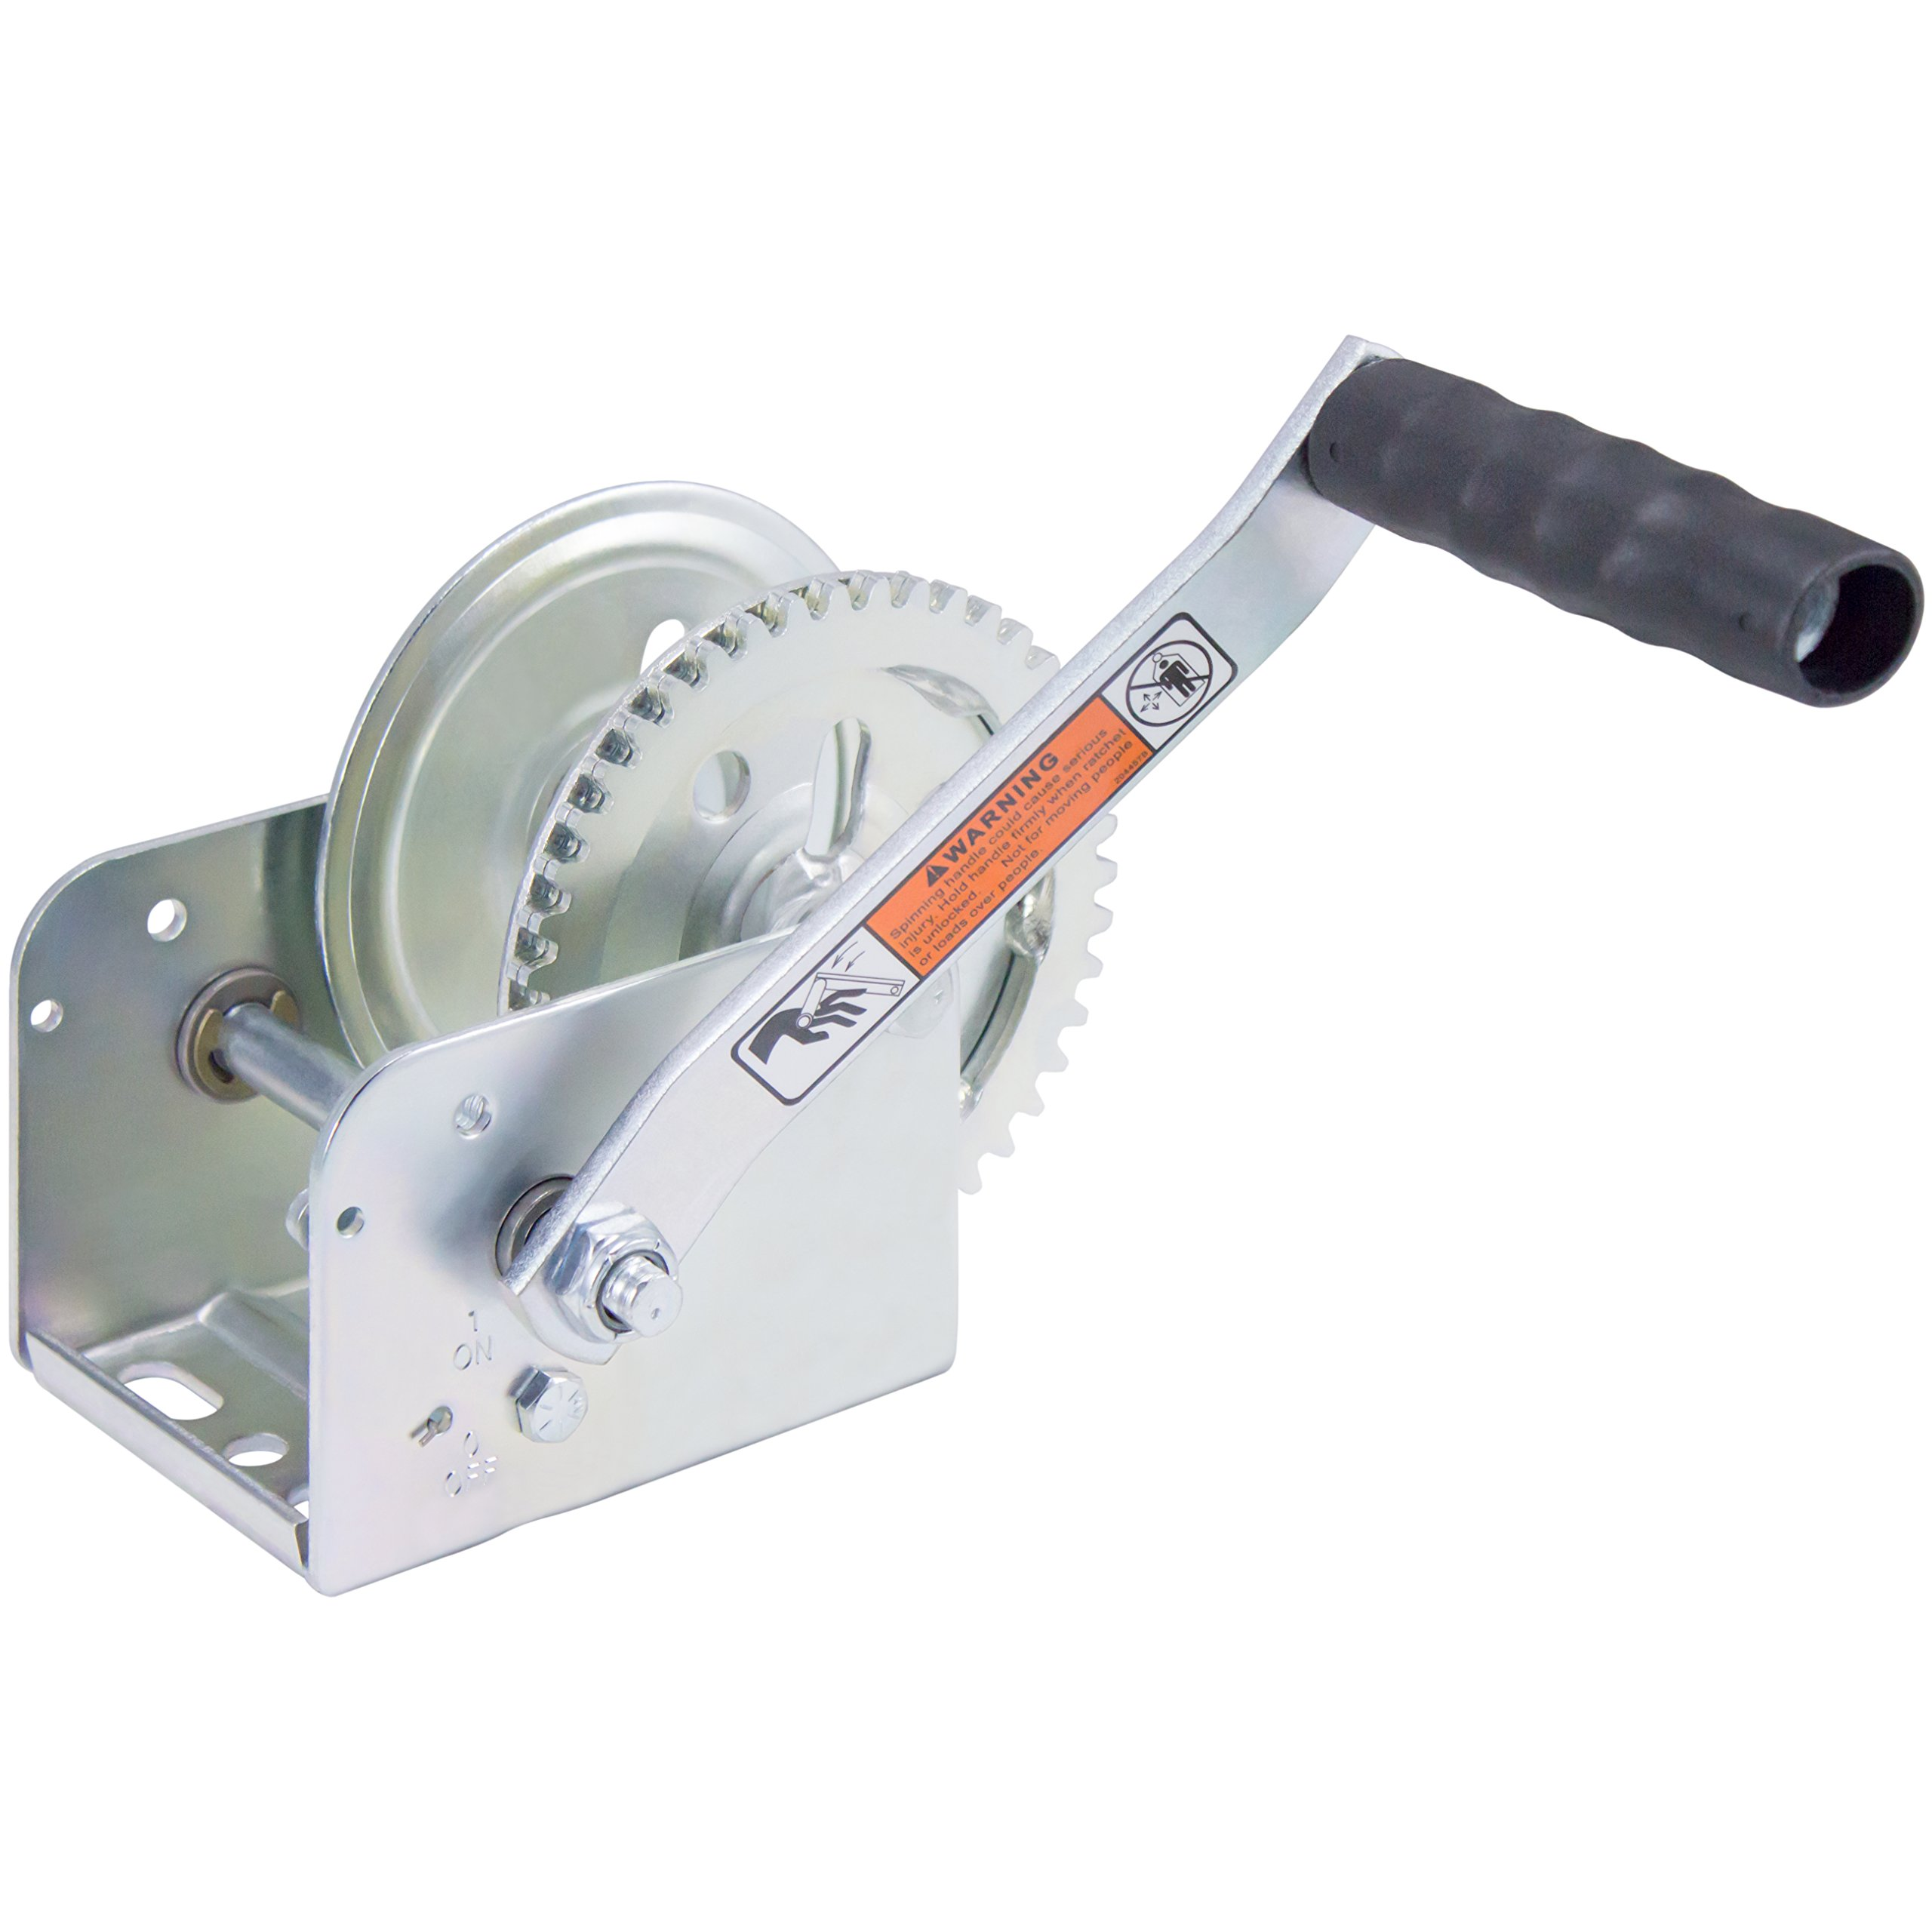 Dutton-Lainson Company DL1300A 1300 lbs Plated Pulling Winch